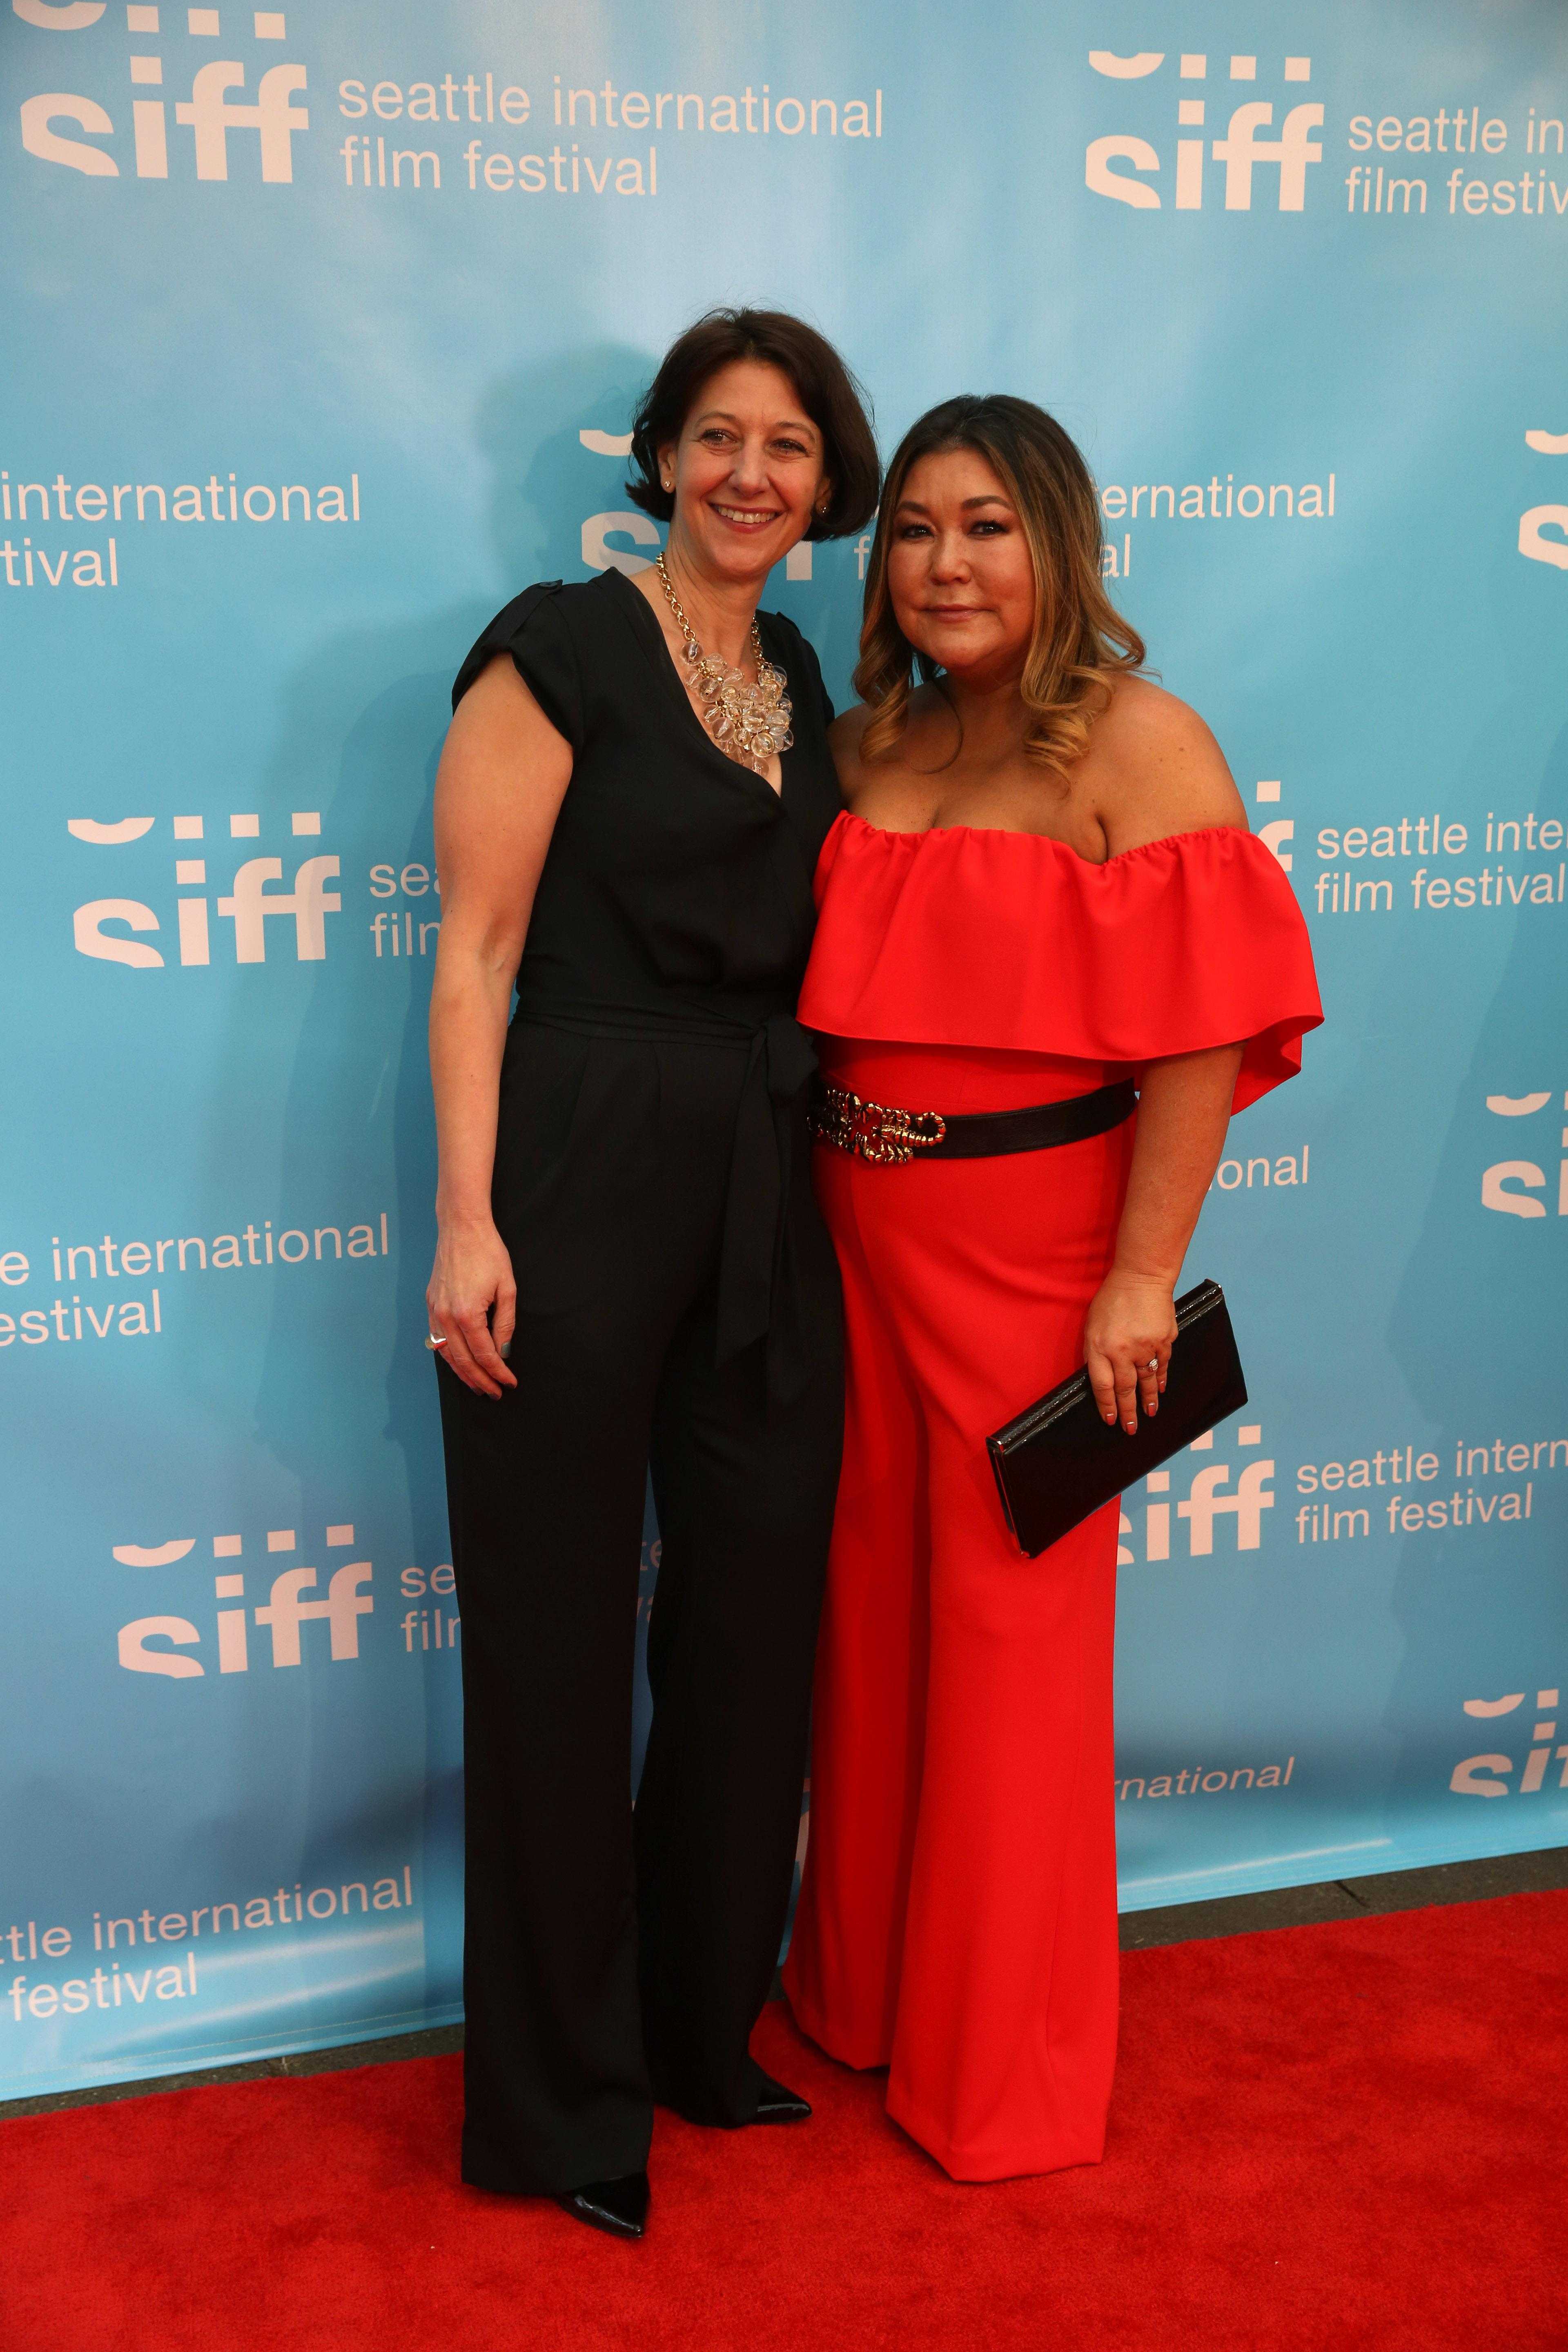 photos: 2017 siff opening night red carpet | seattle refined